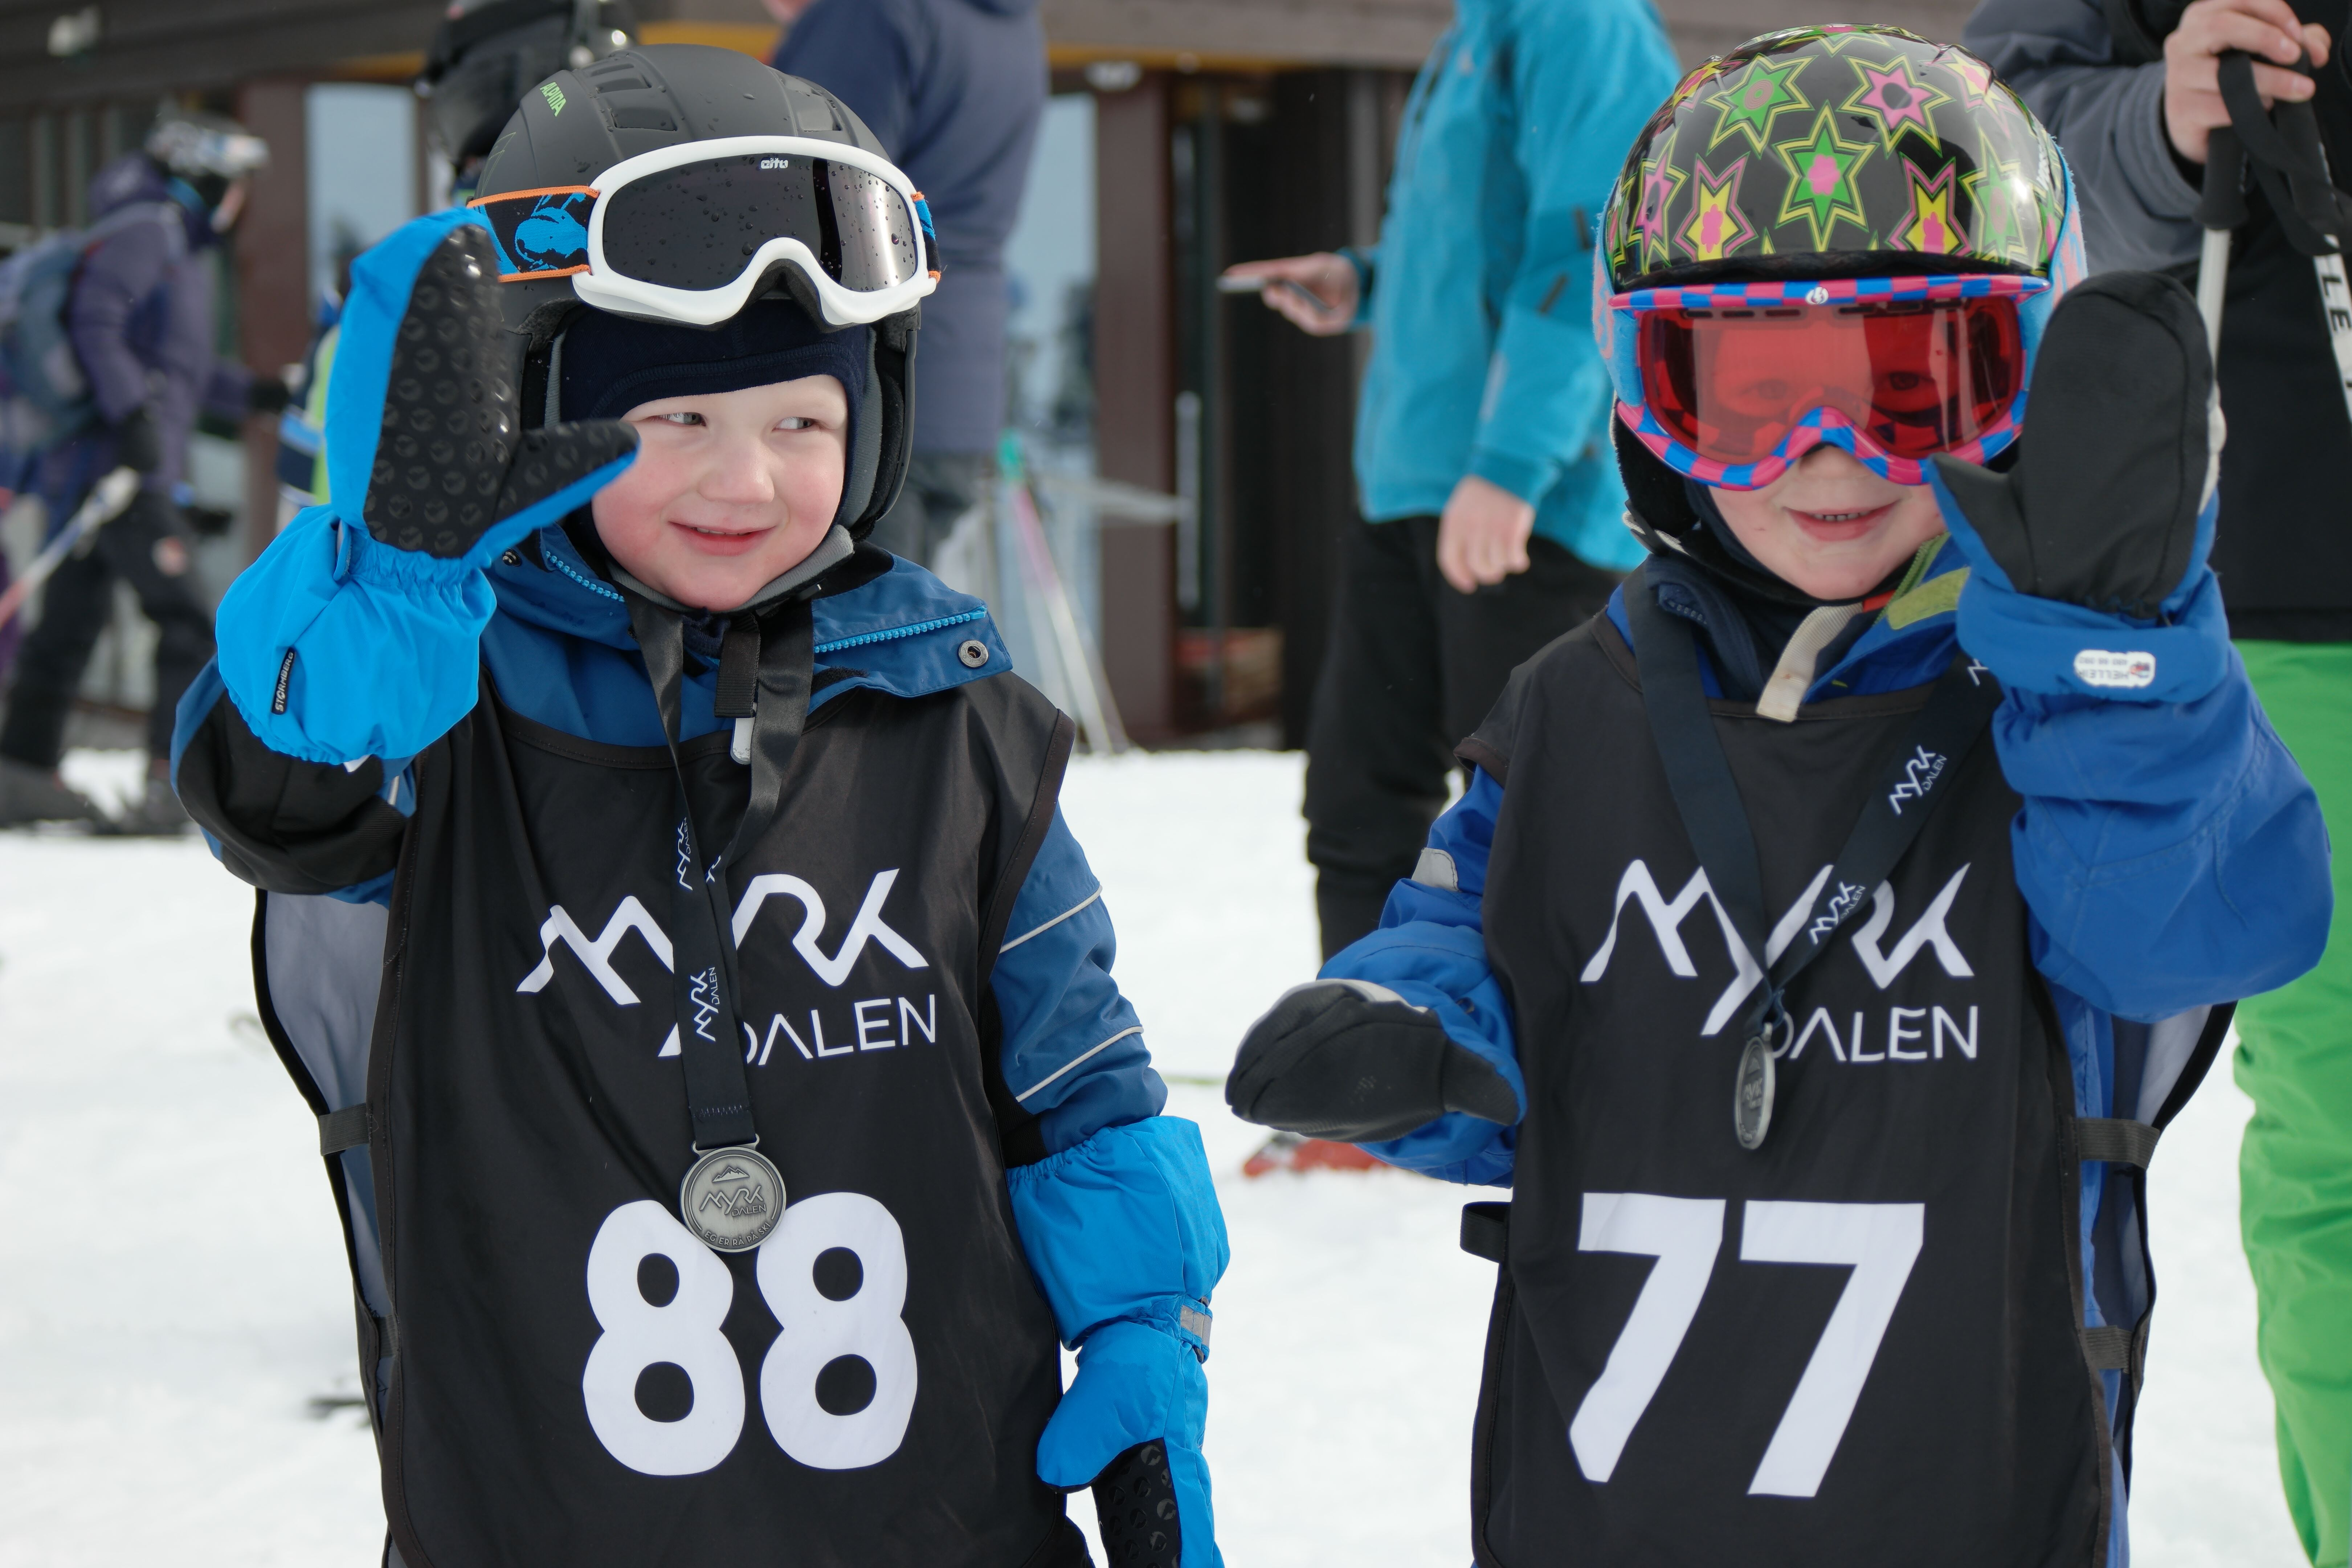 Fun skiing competition for kids